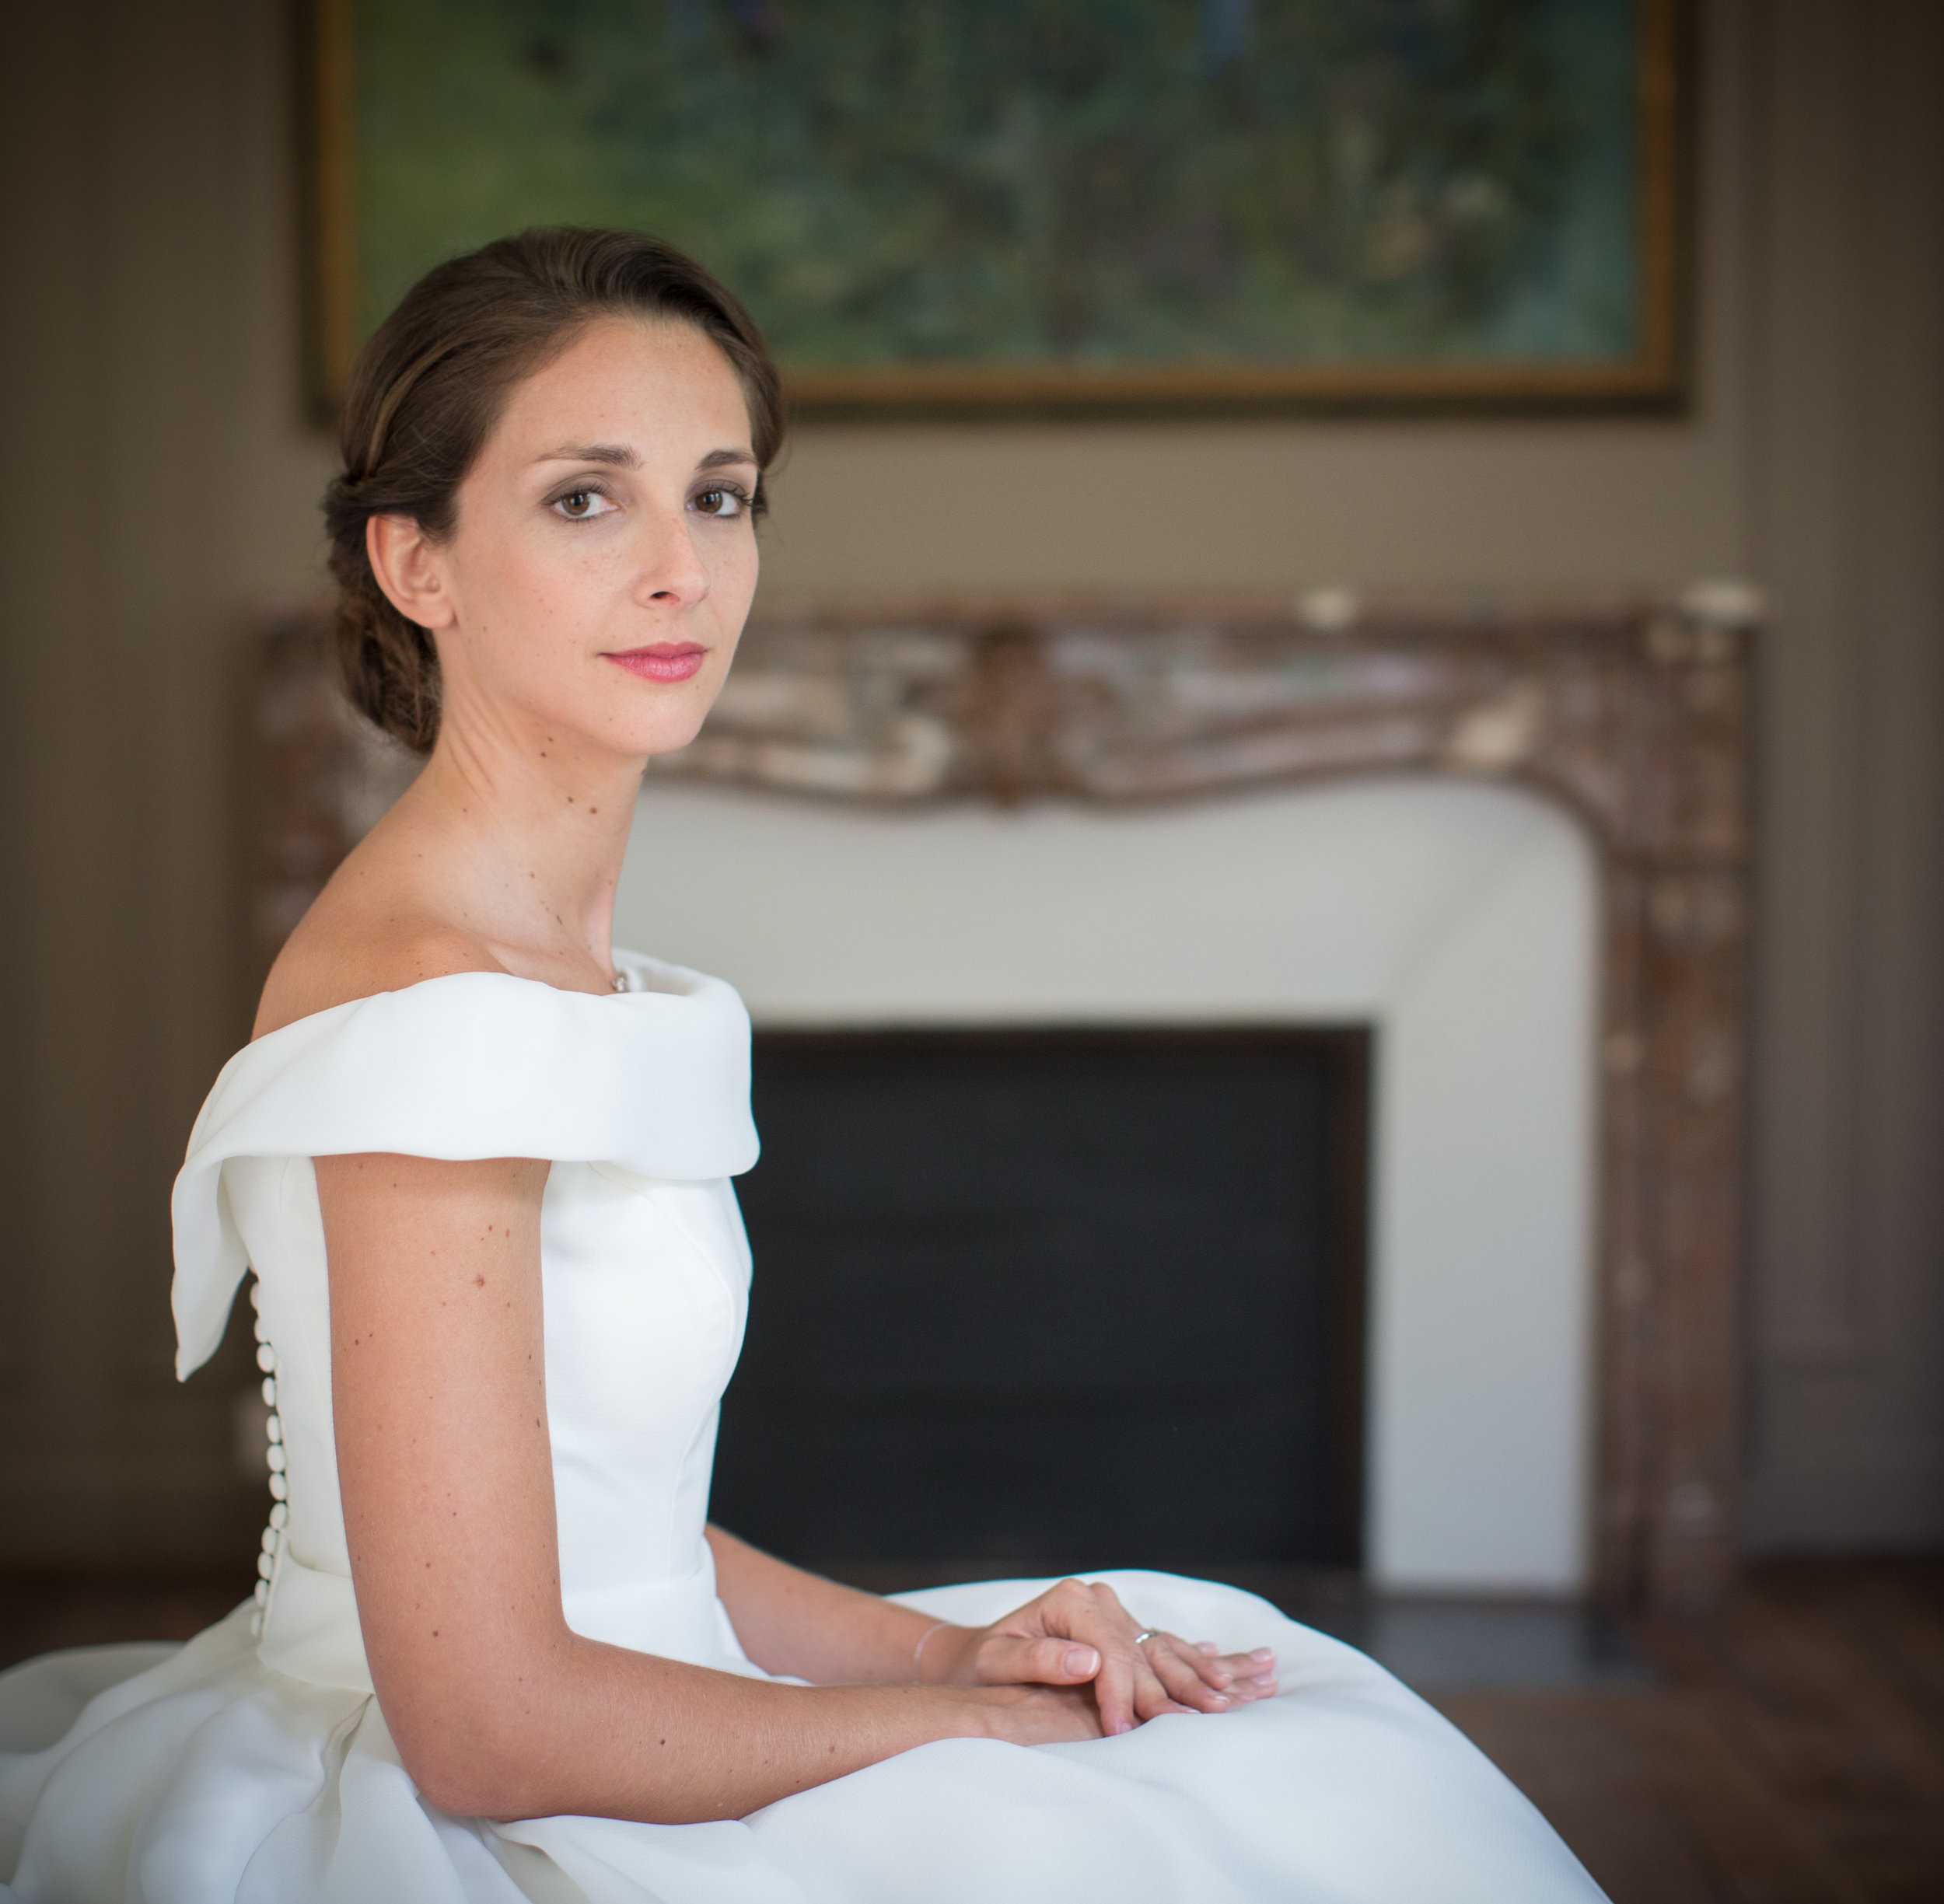 Mariage de Manon, coiffure et maquillage by The reporthair - 1